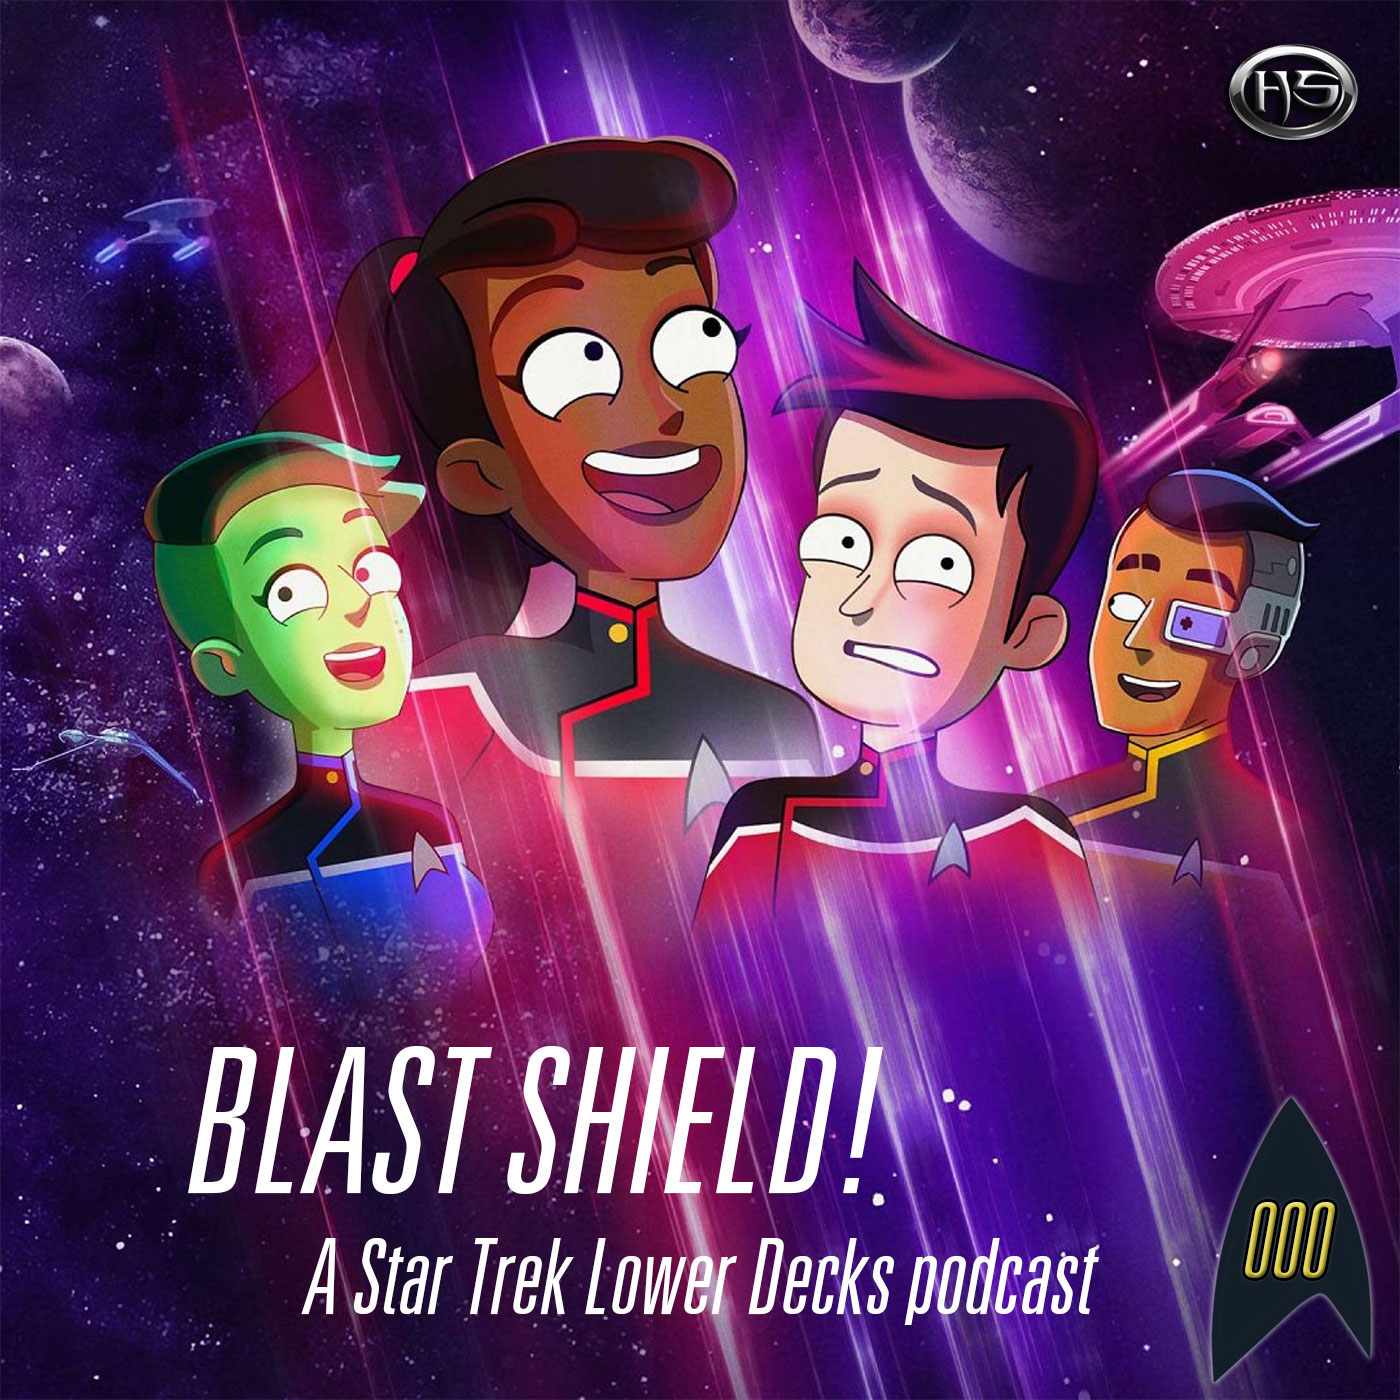 Blast Shield! Episode 0